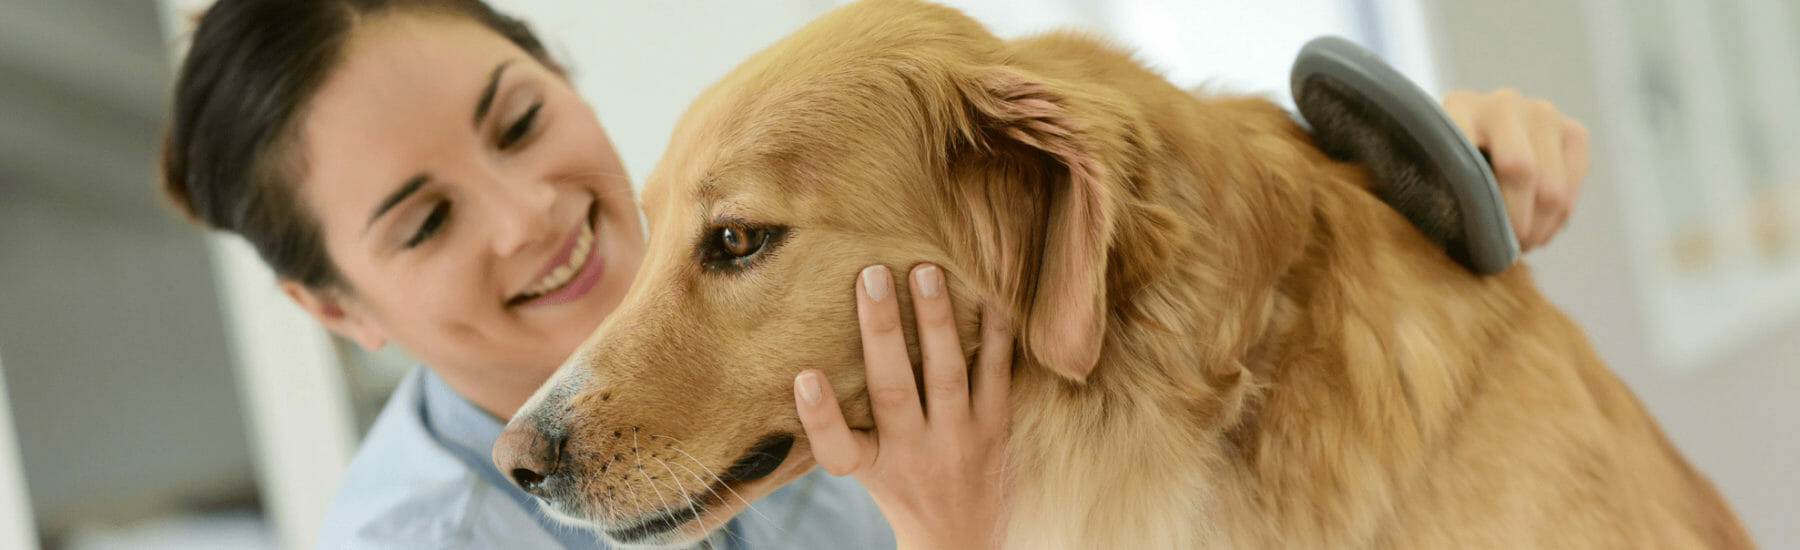 Golden dog being brushed by groomer